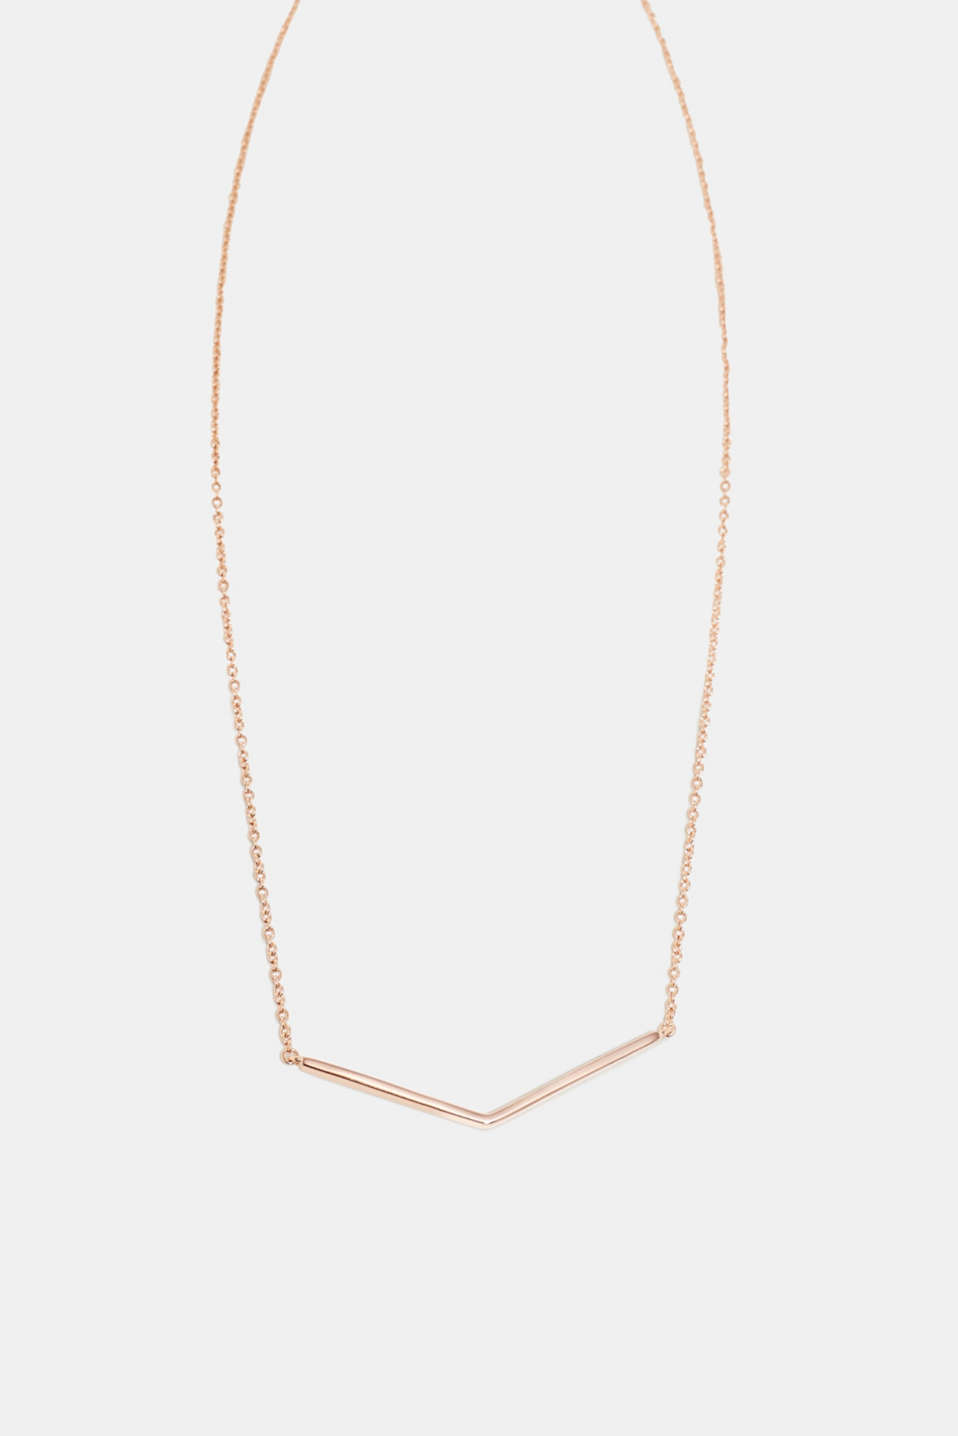 Esprit - Sterling silver necklace with a pendant